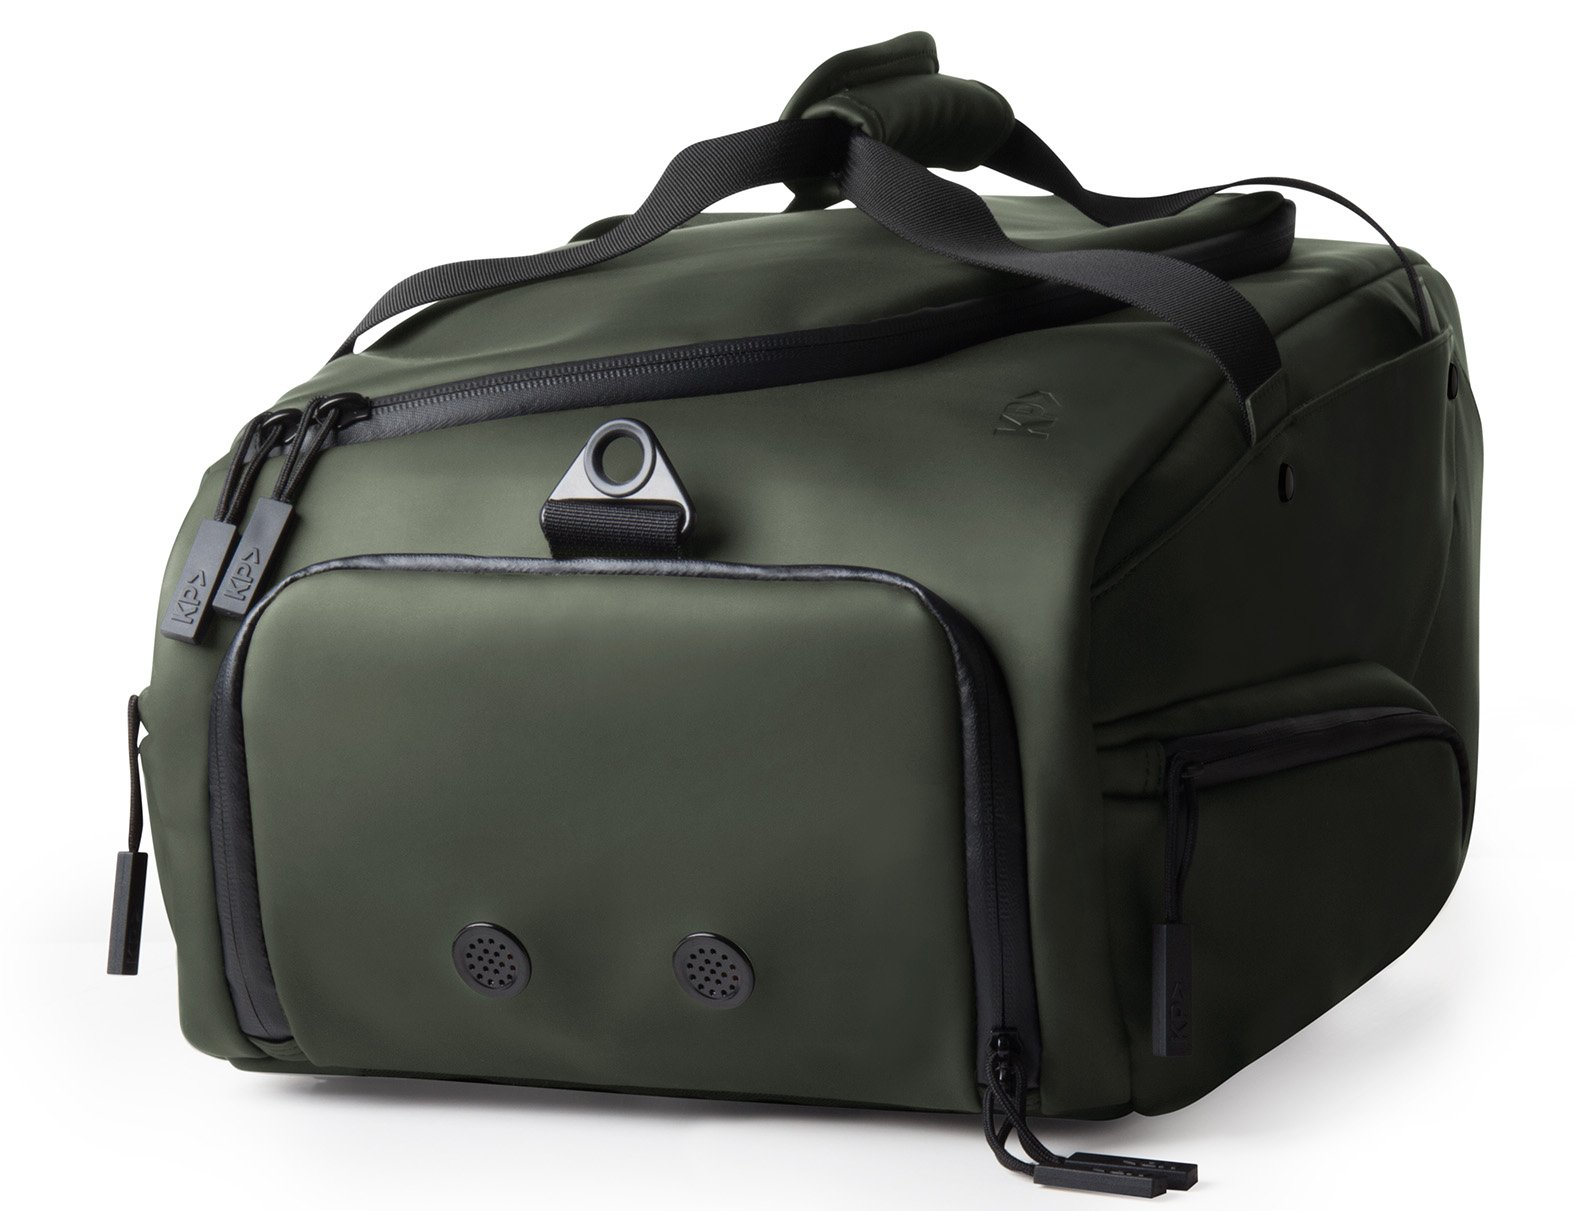 KP Duffle - The Ultimate Travel Bag (Army Green) by Keep Pursuing (Image #4)